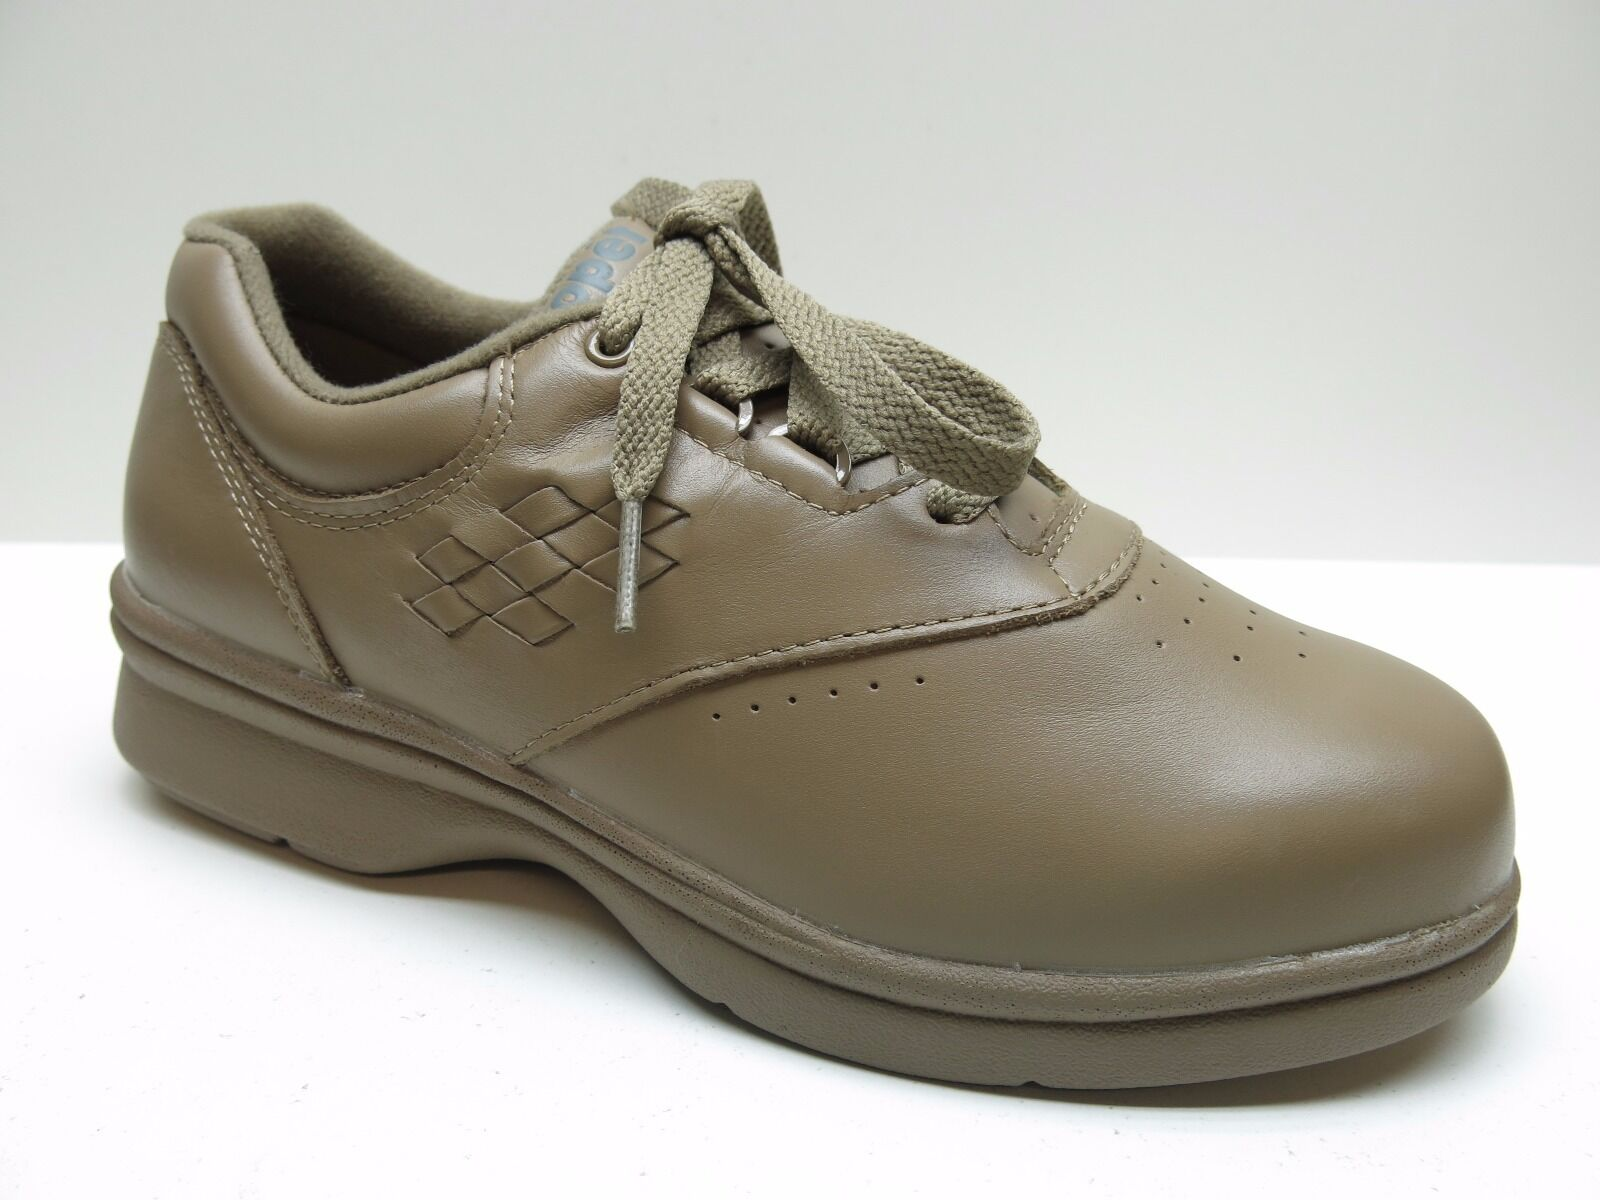 Women's Propet Taupe Vista Walker Leather Oxford Sneaker shoes NEW 7M 7  100.